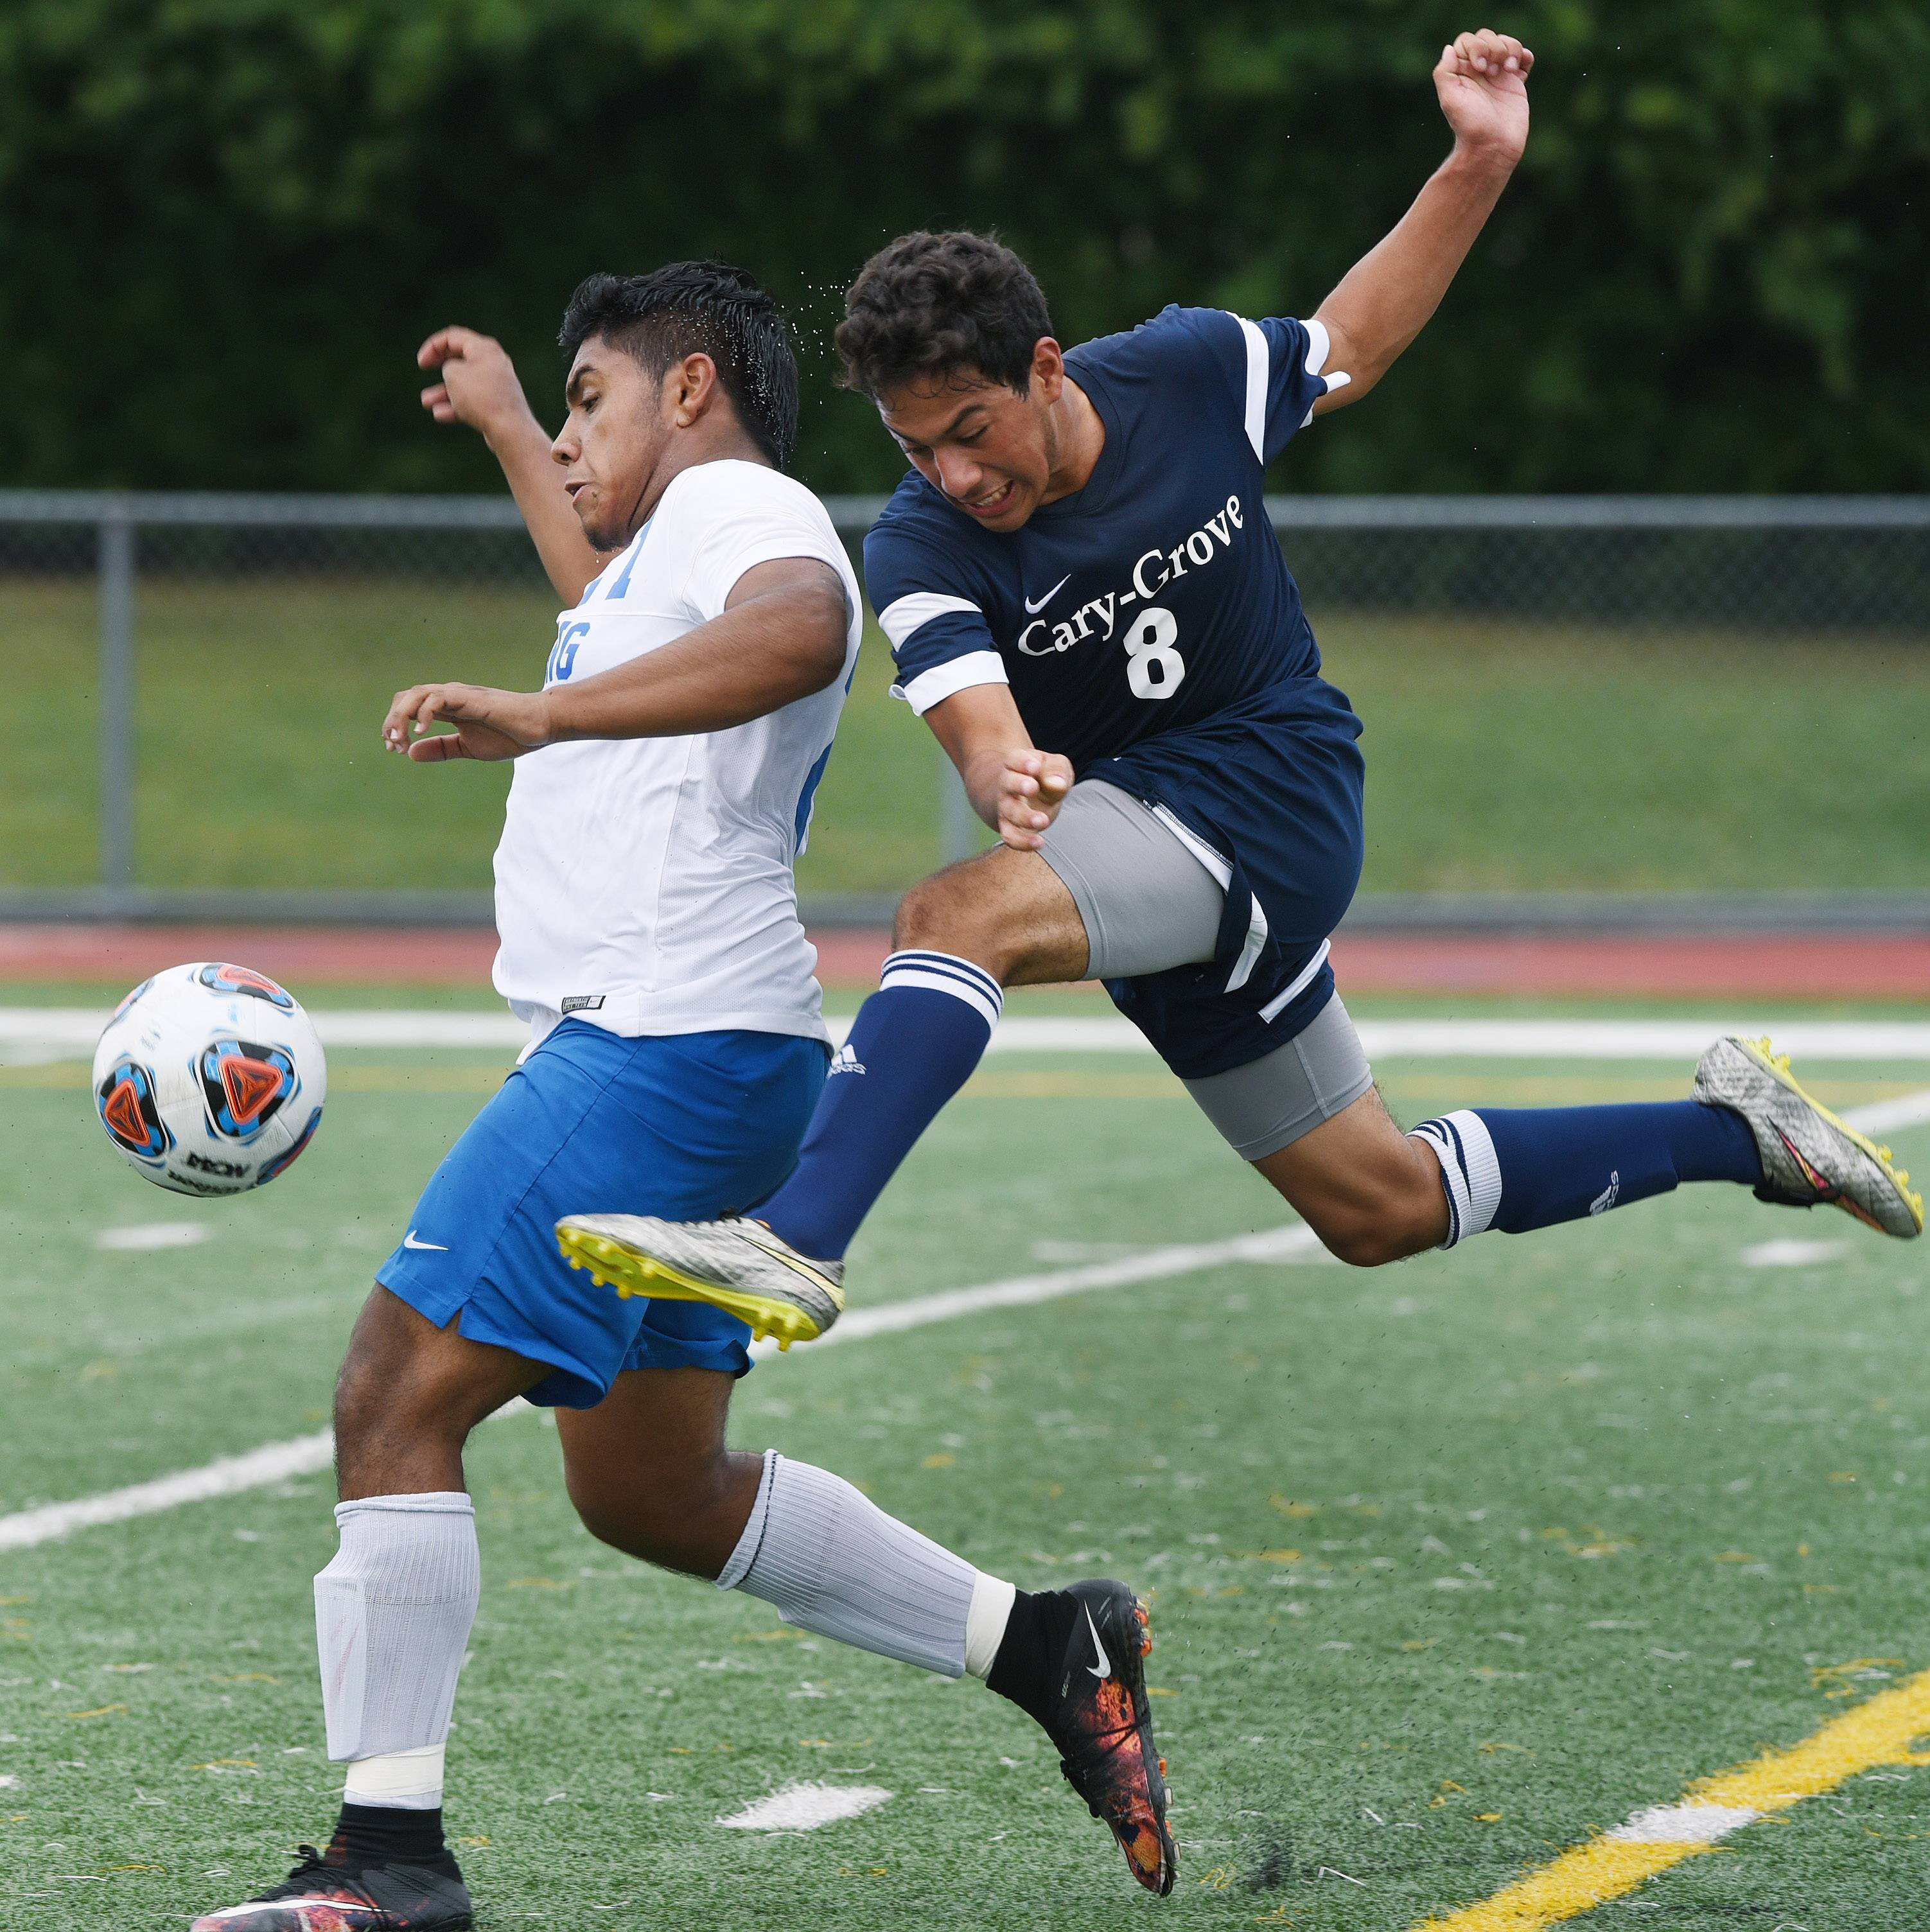 Cary-Grove's Jesus Angeles, right, goes airborne as he pursues the ball alongside Wheeling's Rivaldi Araujo during Saturday's soccer game at Wheeling.